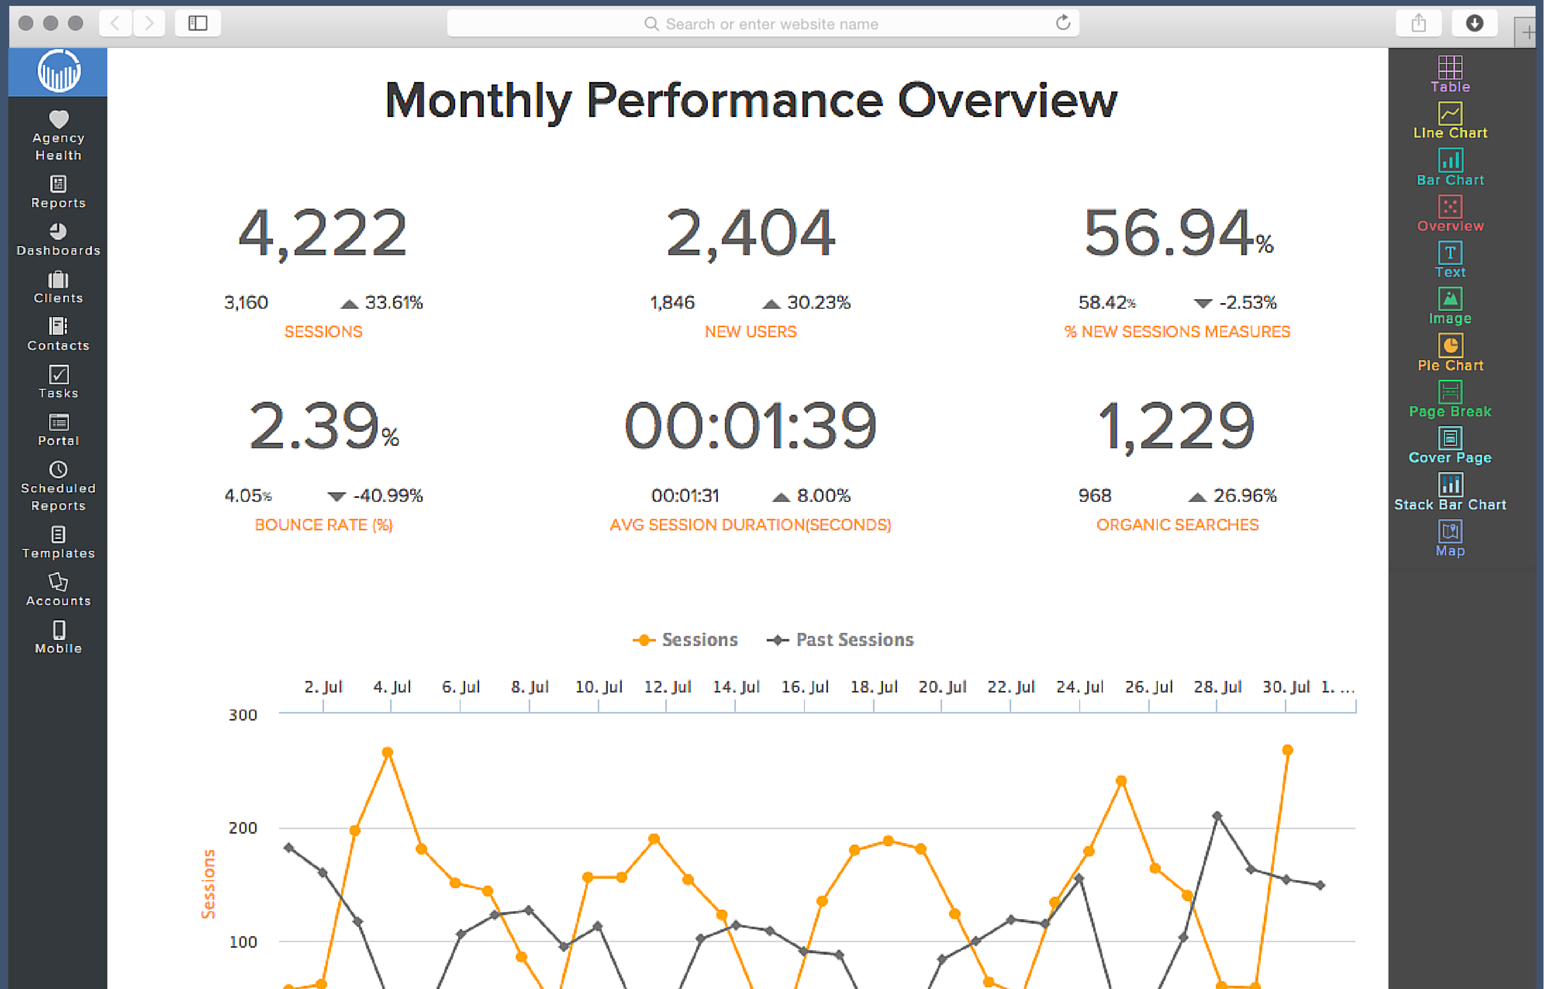 Monthly performance overview